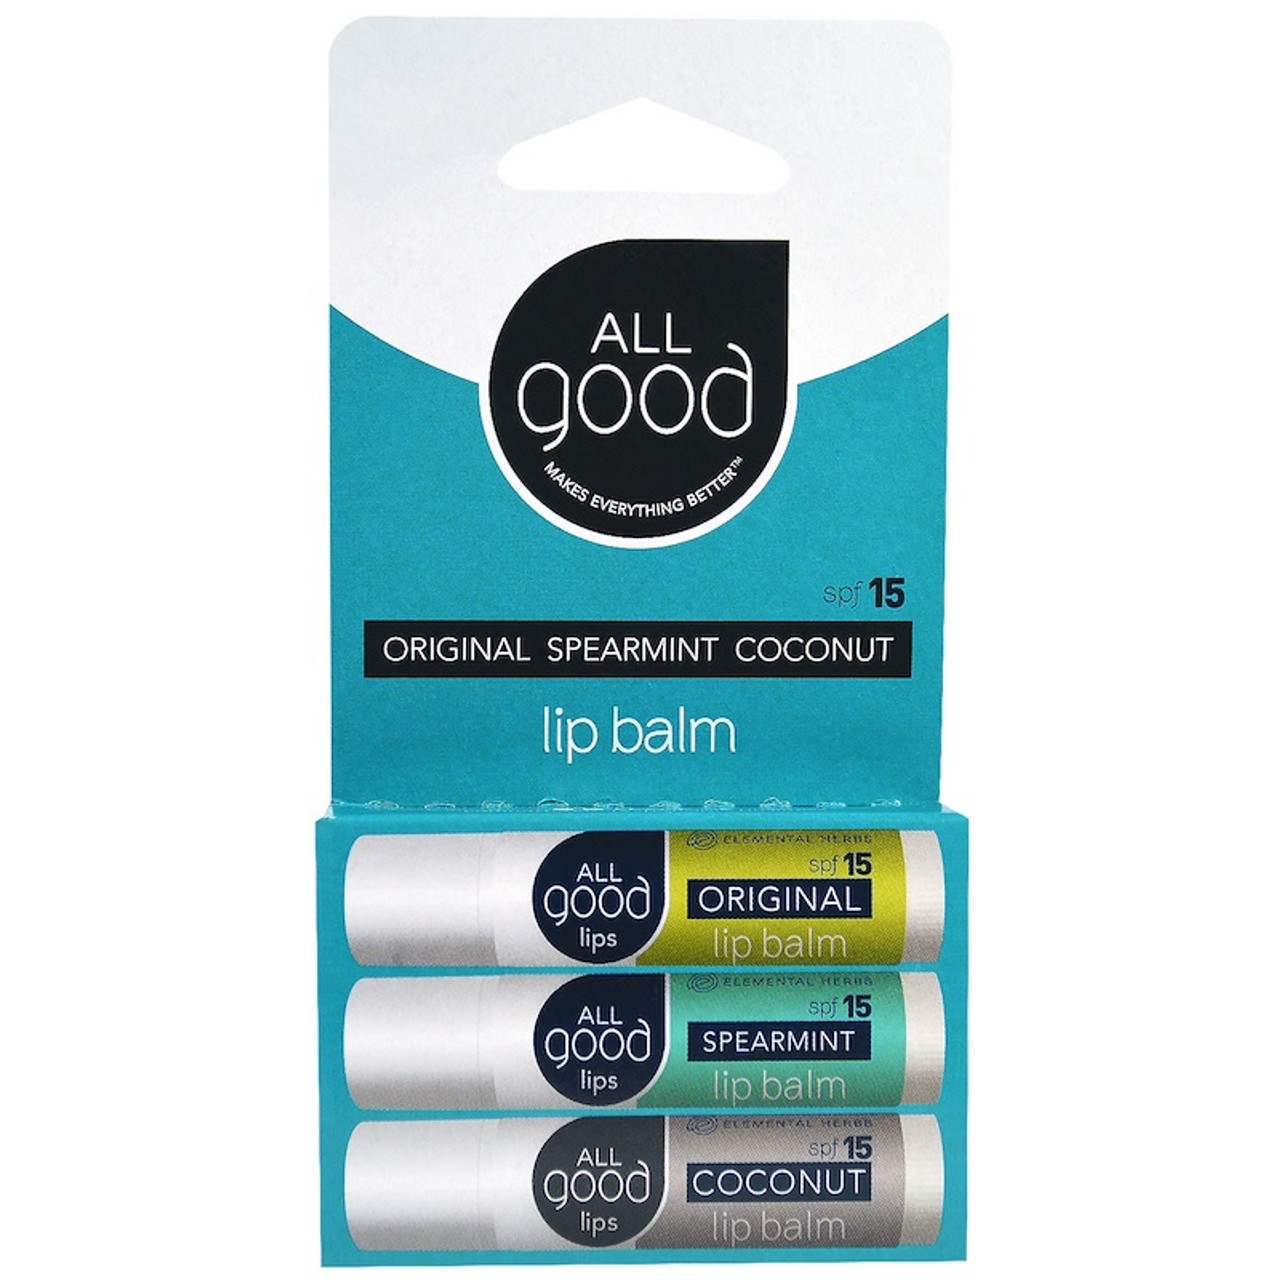 ALL Good Lips spf 15 - 3 Pack